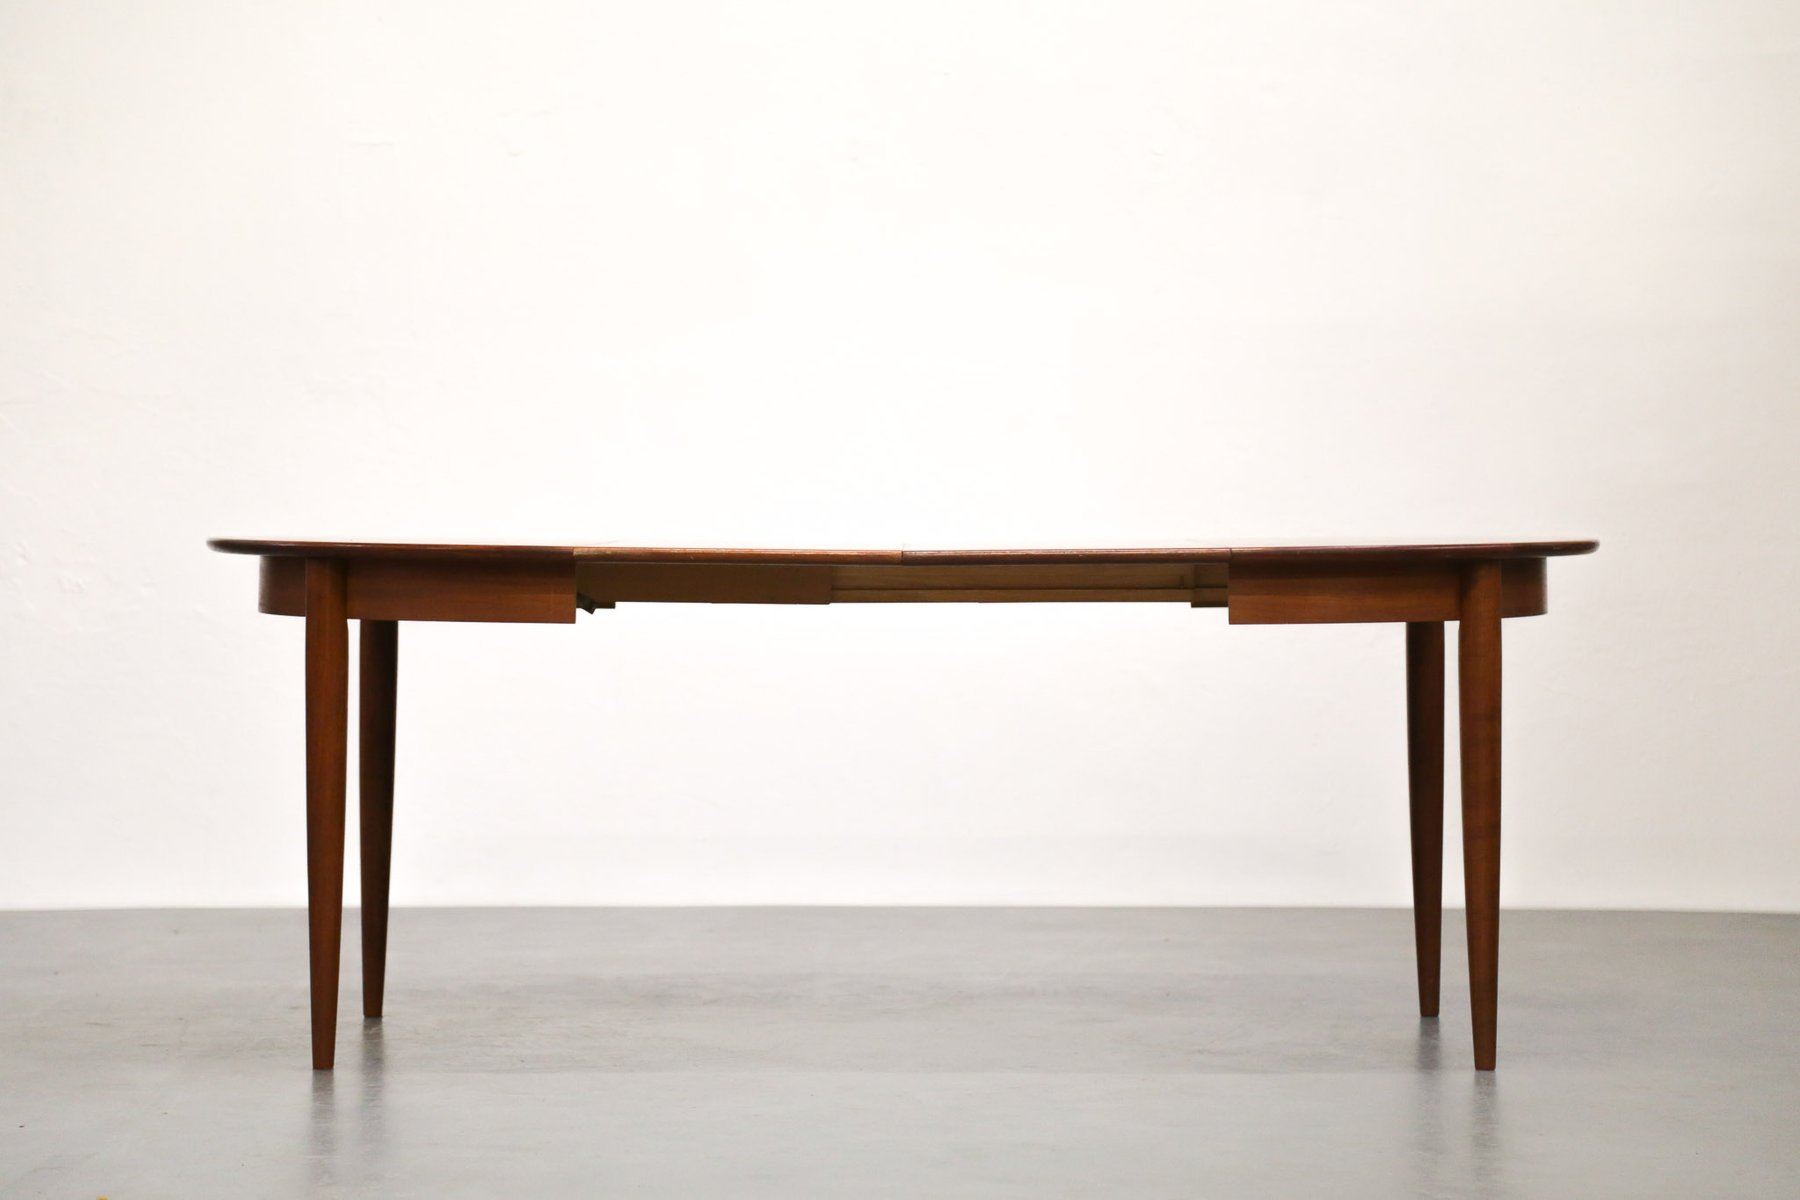 Scandinavian teak dining table with extension leaves for sale at pamono - Dining table scandinavian ...